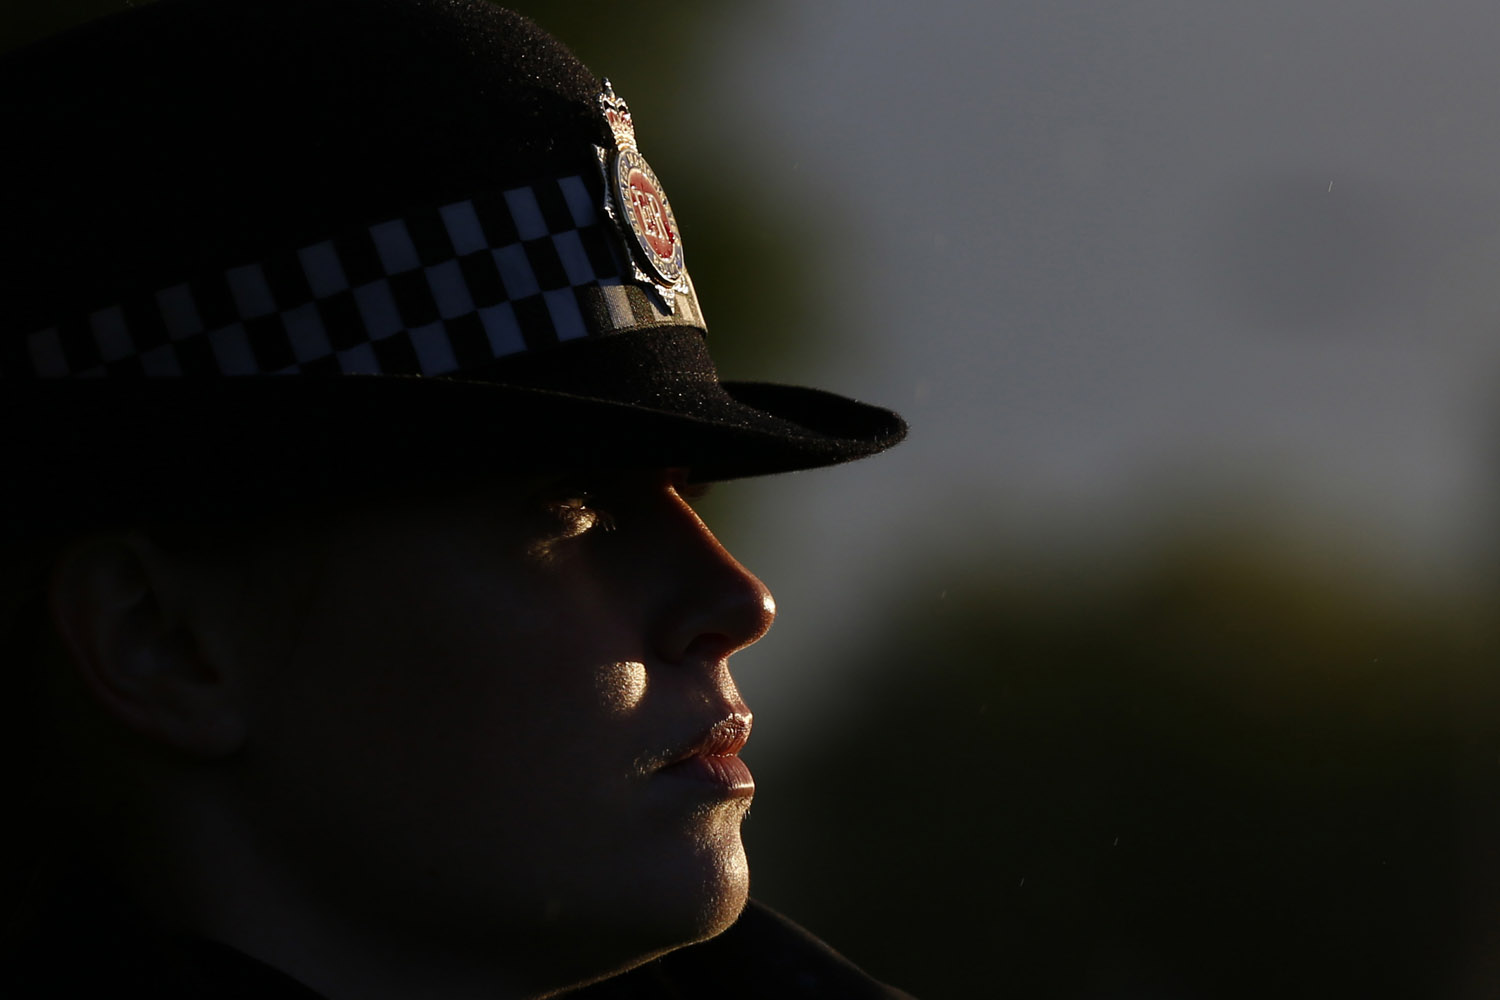 Sept. 18, 2012. A police officer guards the scene where two female police officers were killed in Hattersley near Manchester, northern England.